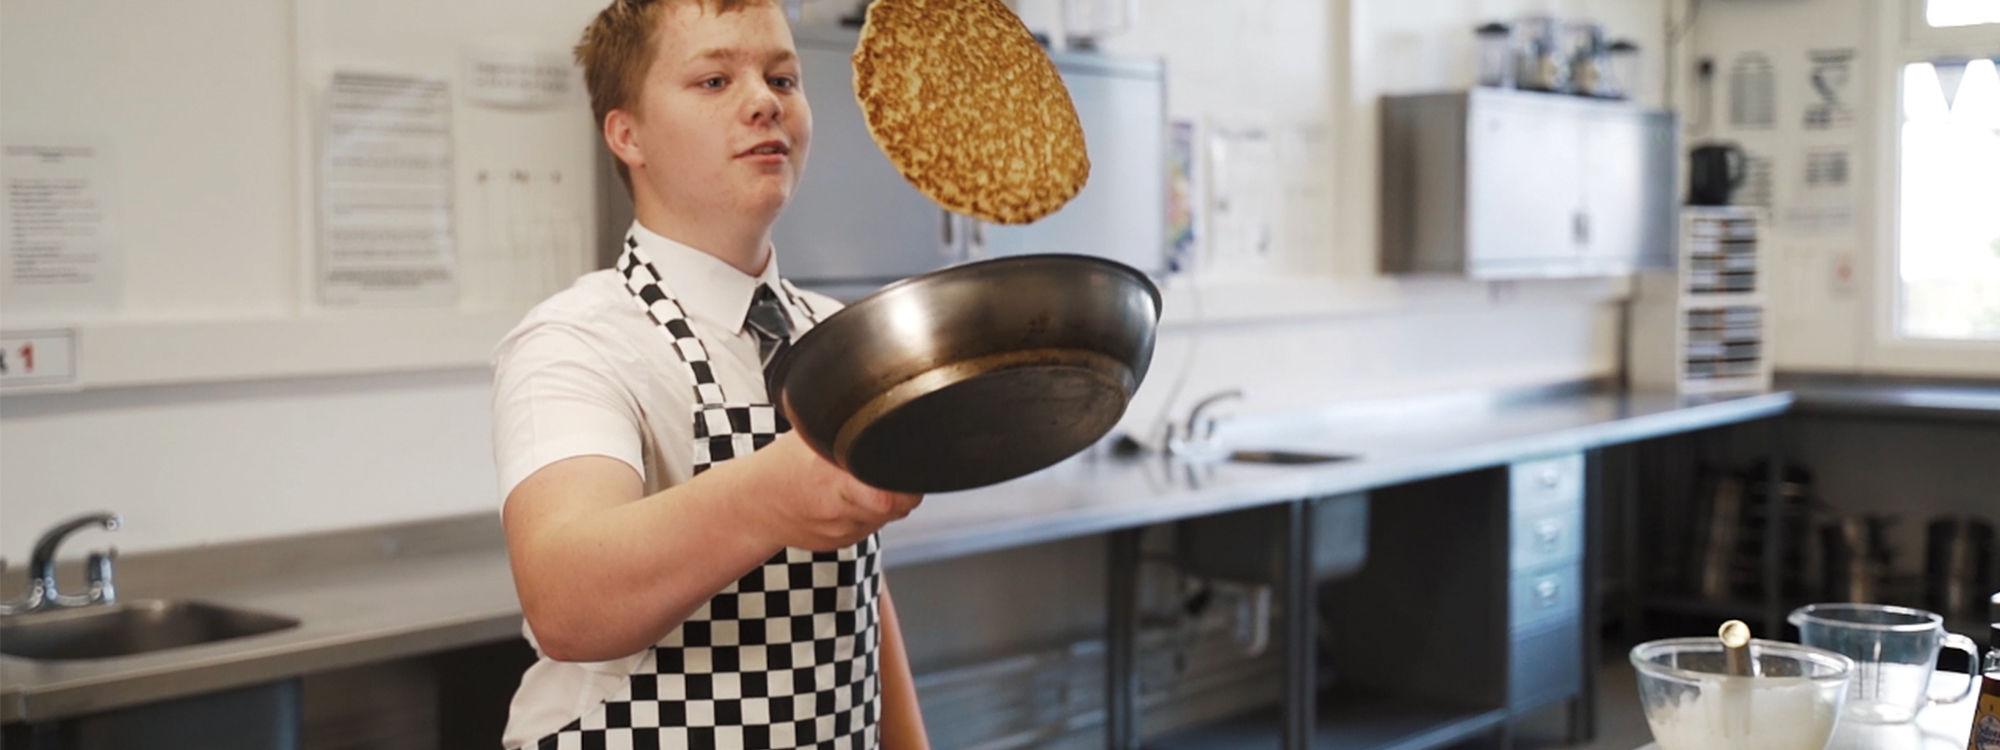 Student cooking pancakes